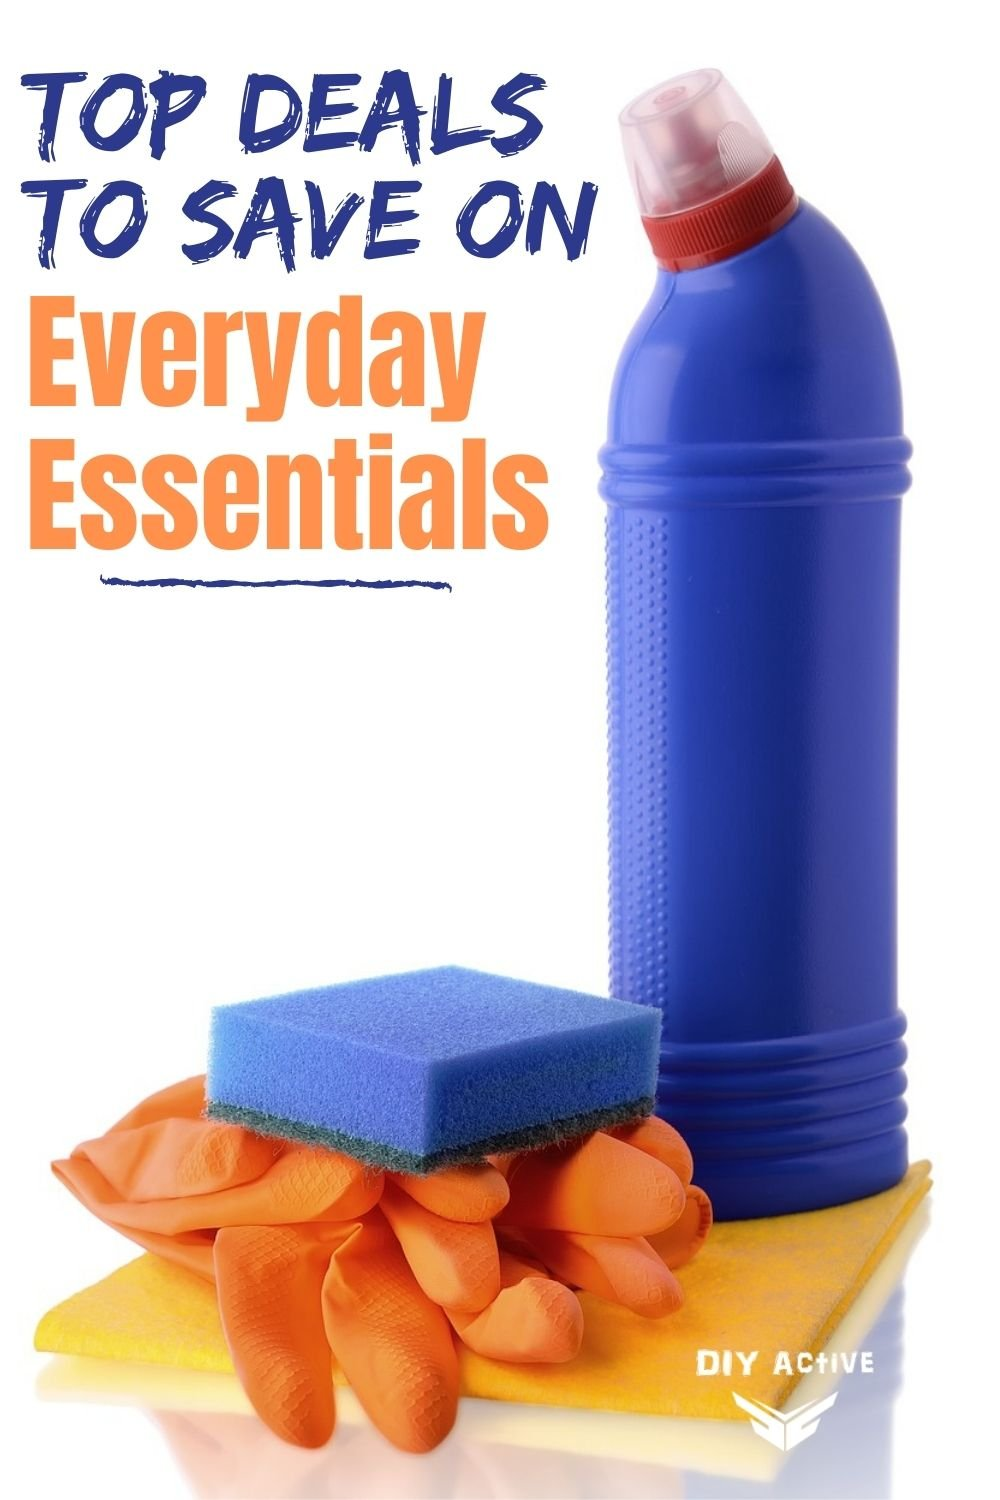 Top Deals to Save on Everyday Essentials